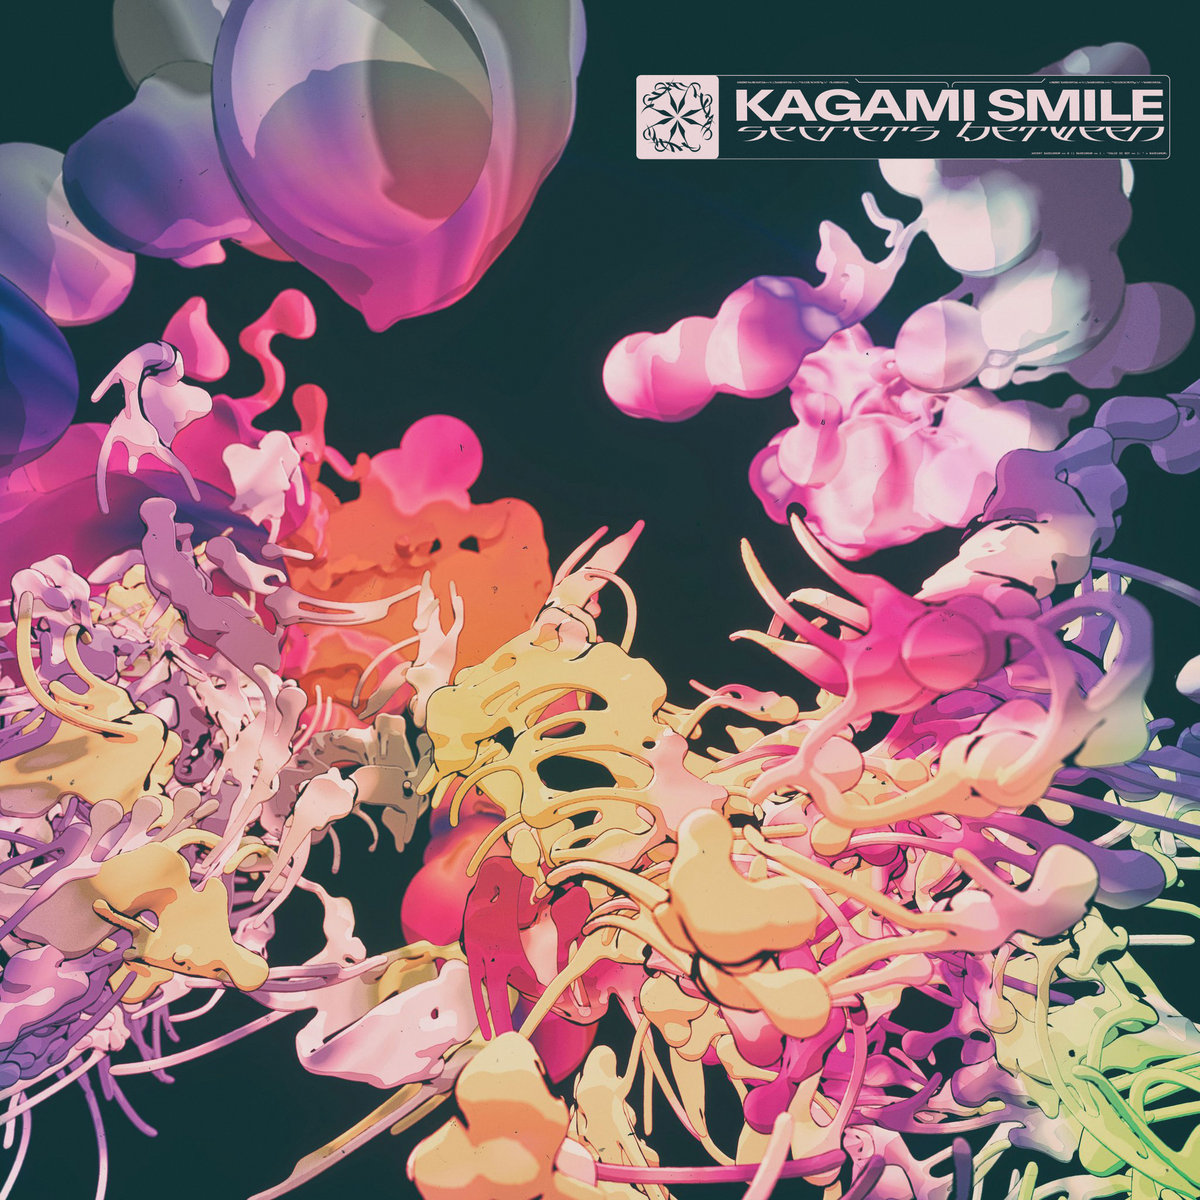 a3014566557 10 - KAGAMI Smile's 'Secrets Between' : Into realms of sonic bliss